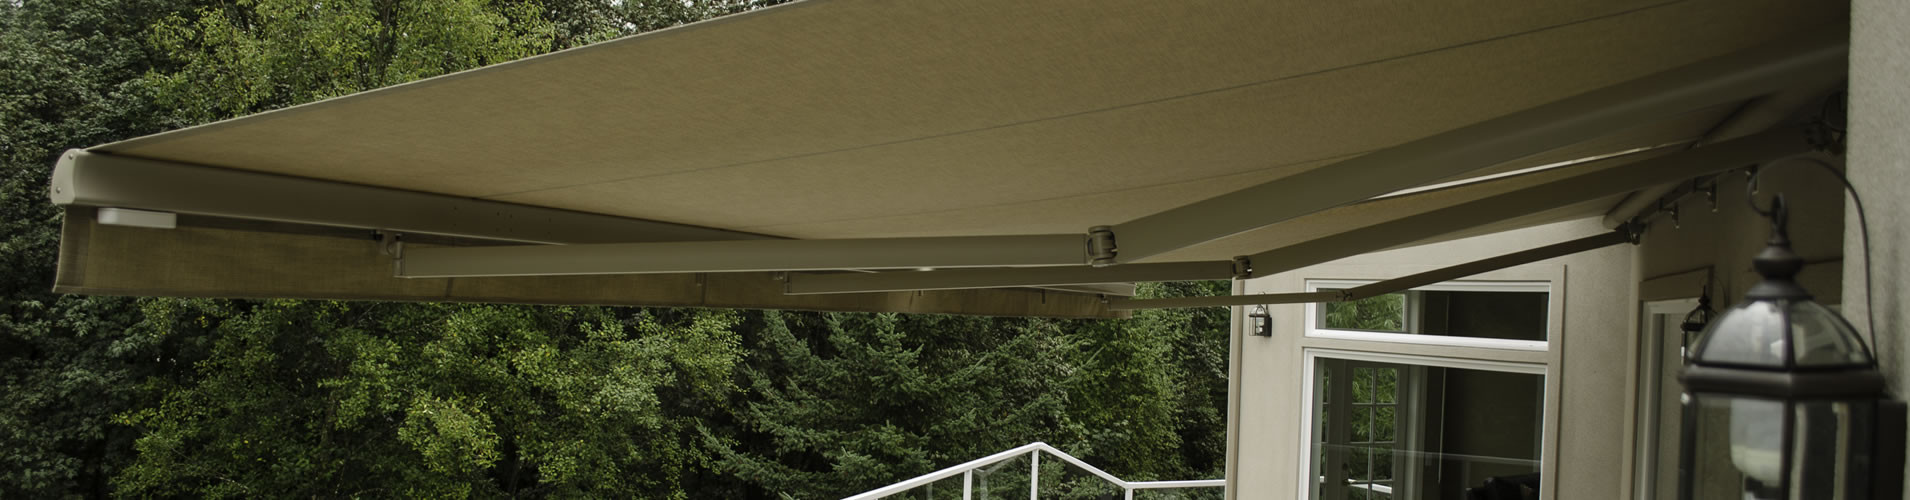 Awnings Austin, TX, Motorized & Manual Retractable Awnings